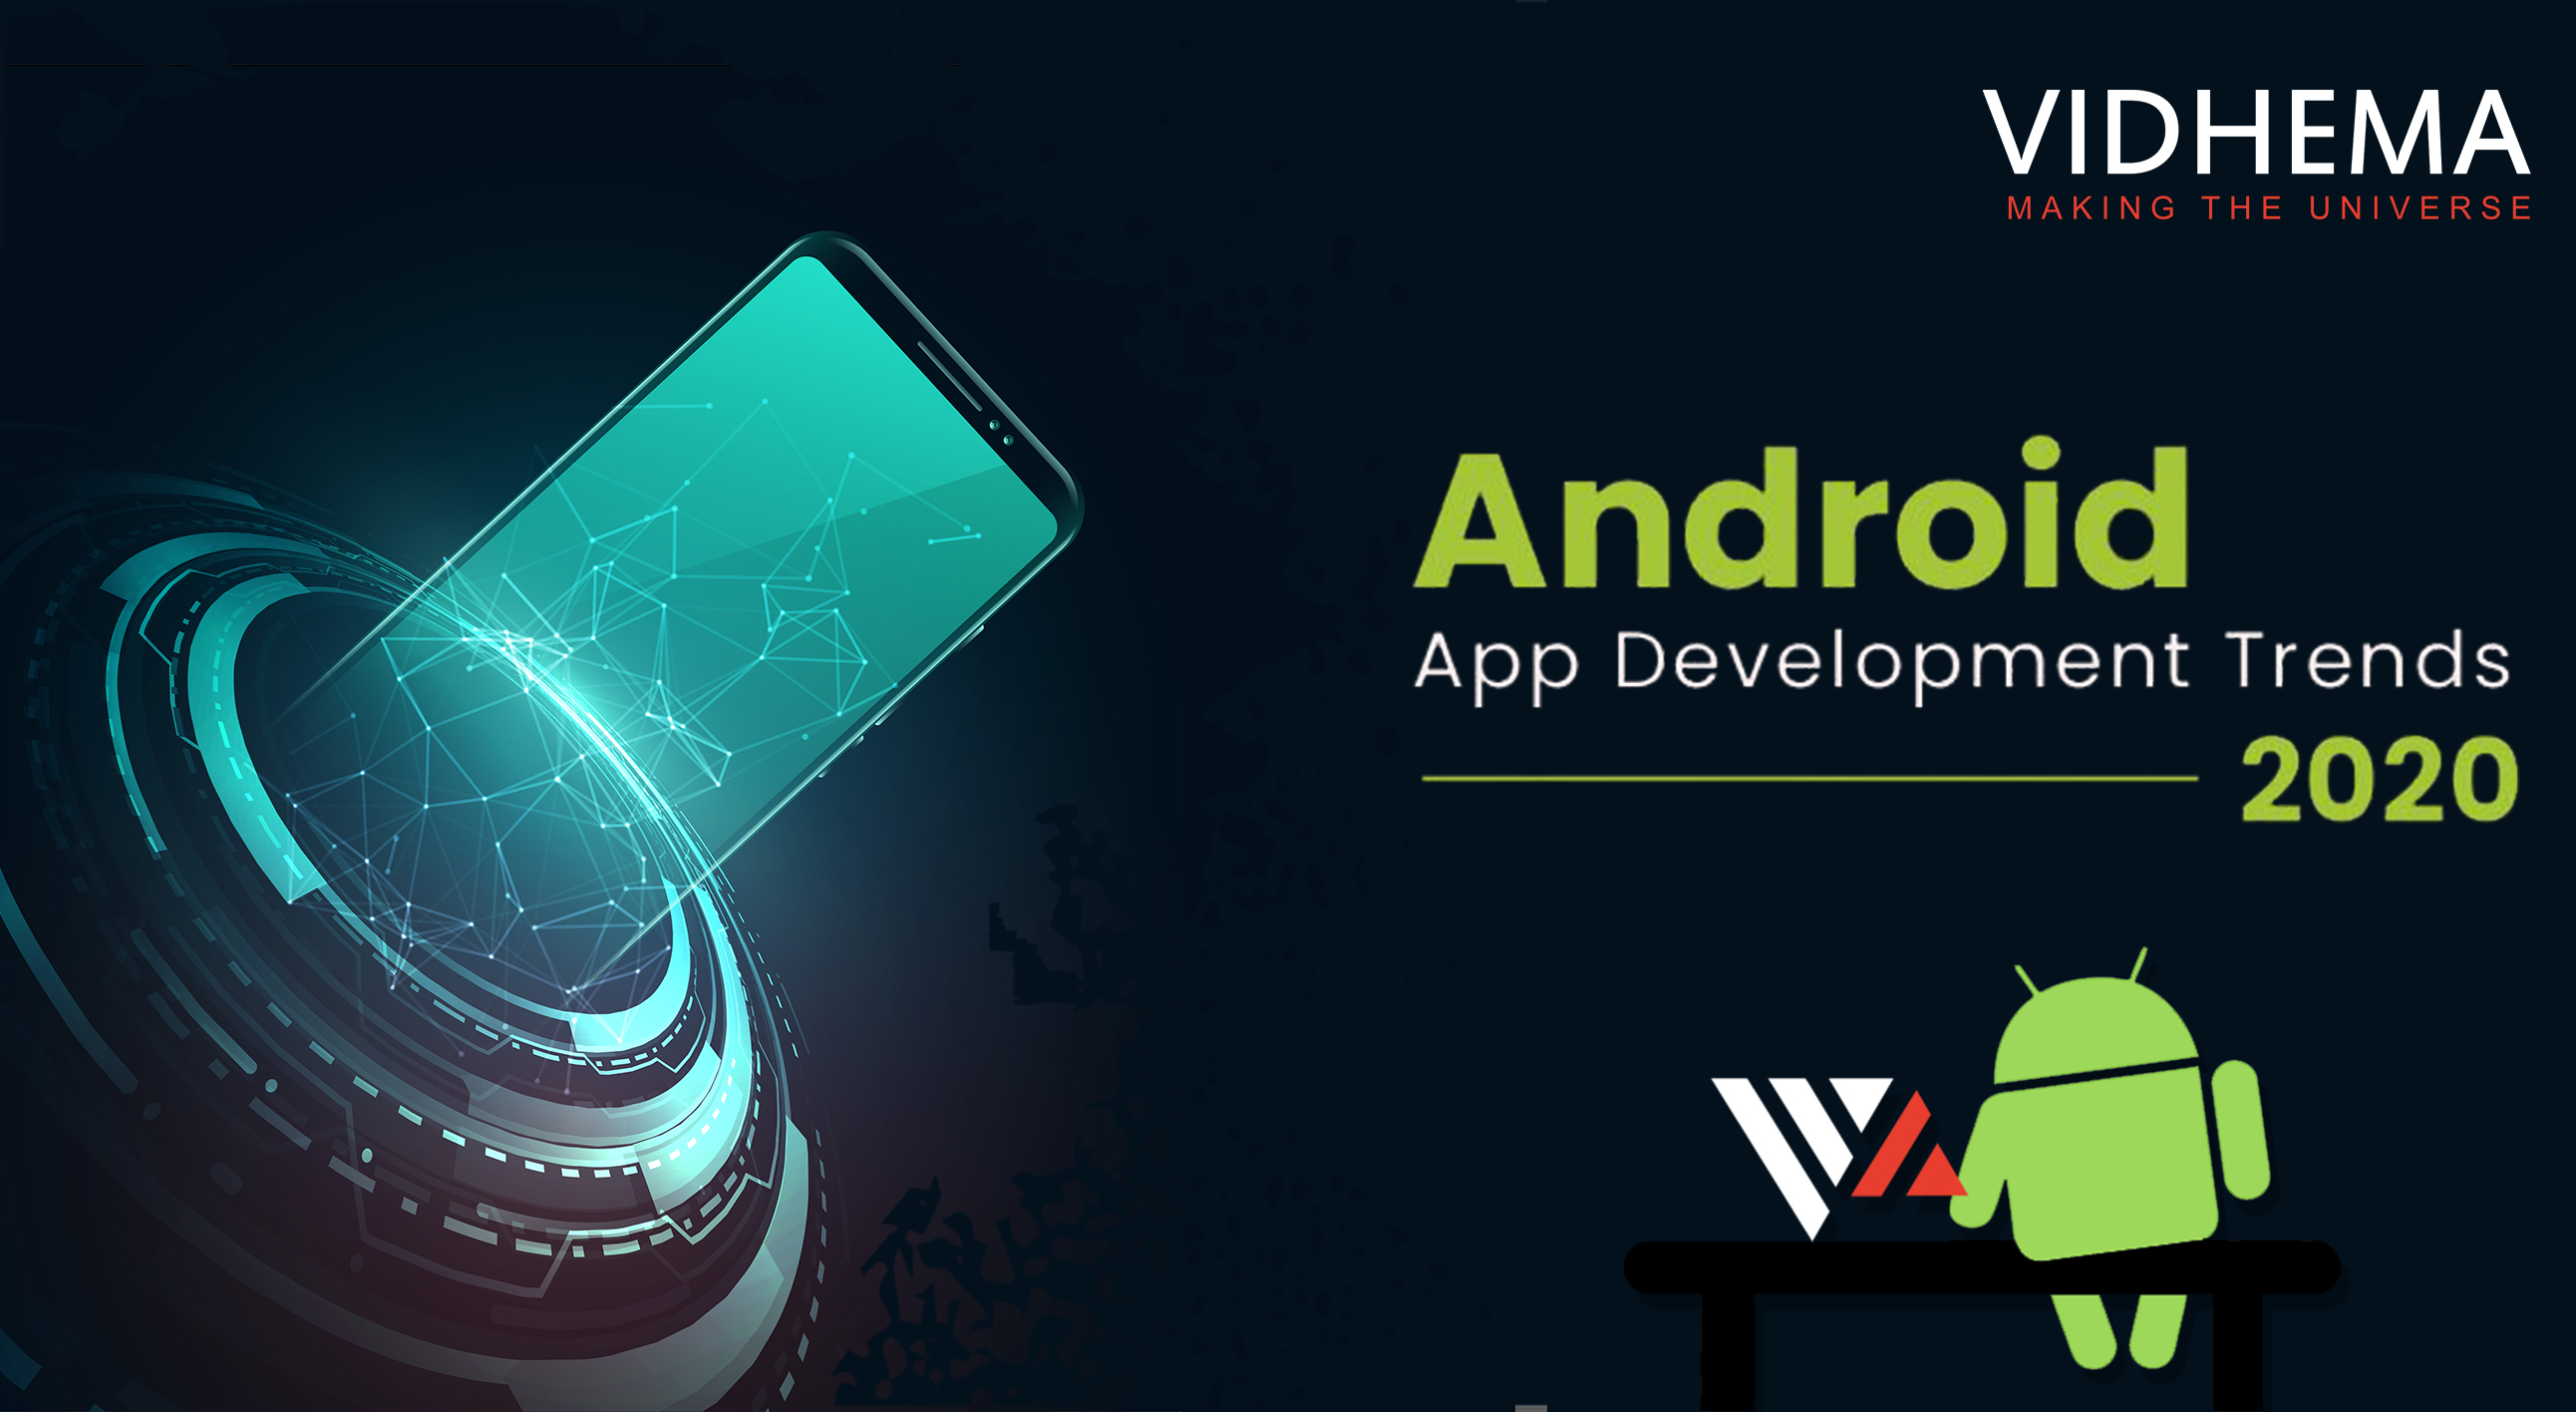 The Latest Android App Development Trends for 2020